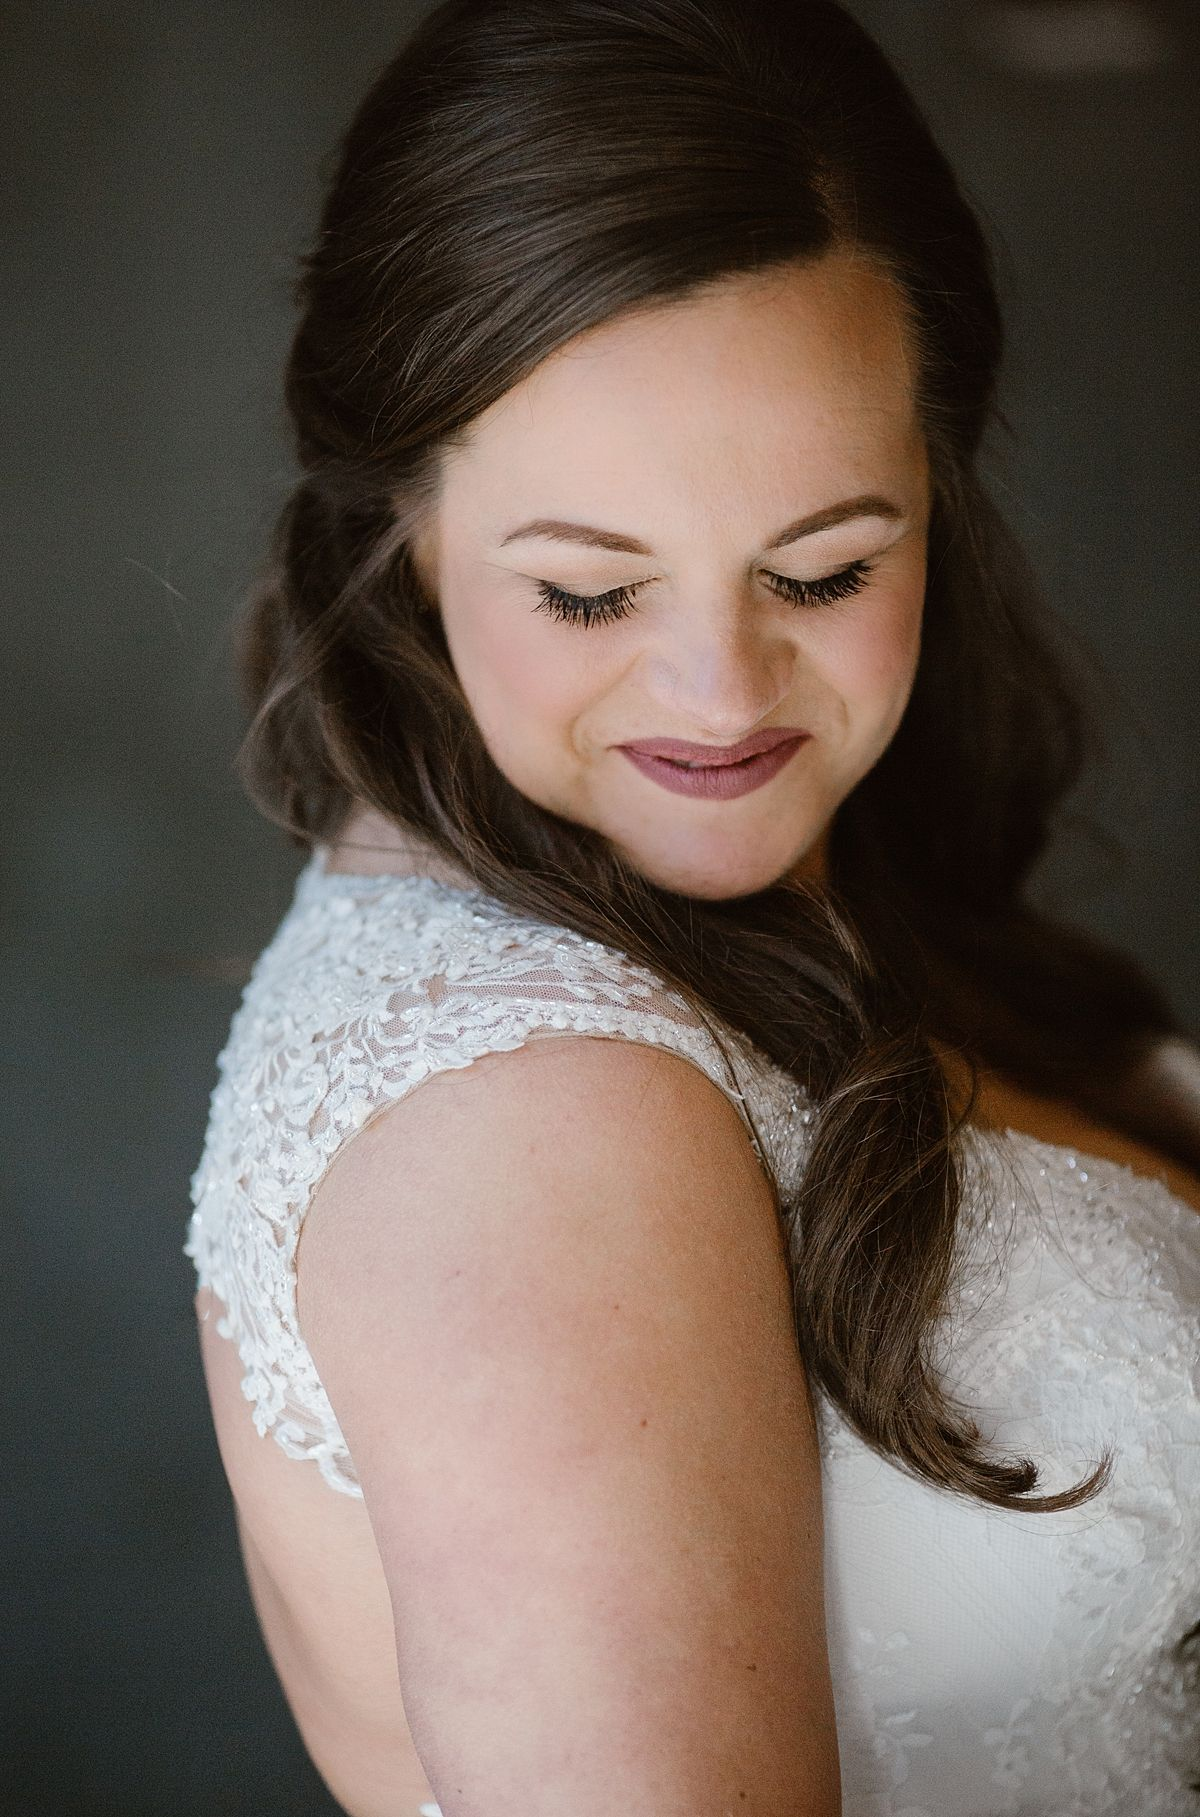 Downtown glamour from erin morrison photography displaying wedding